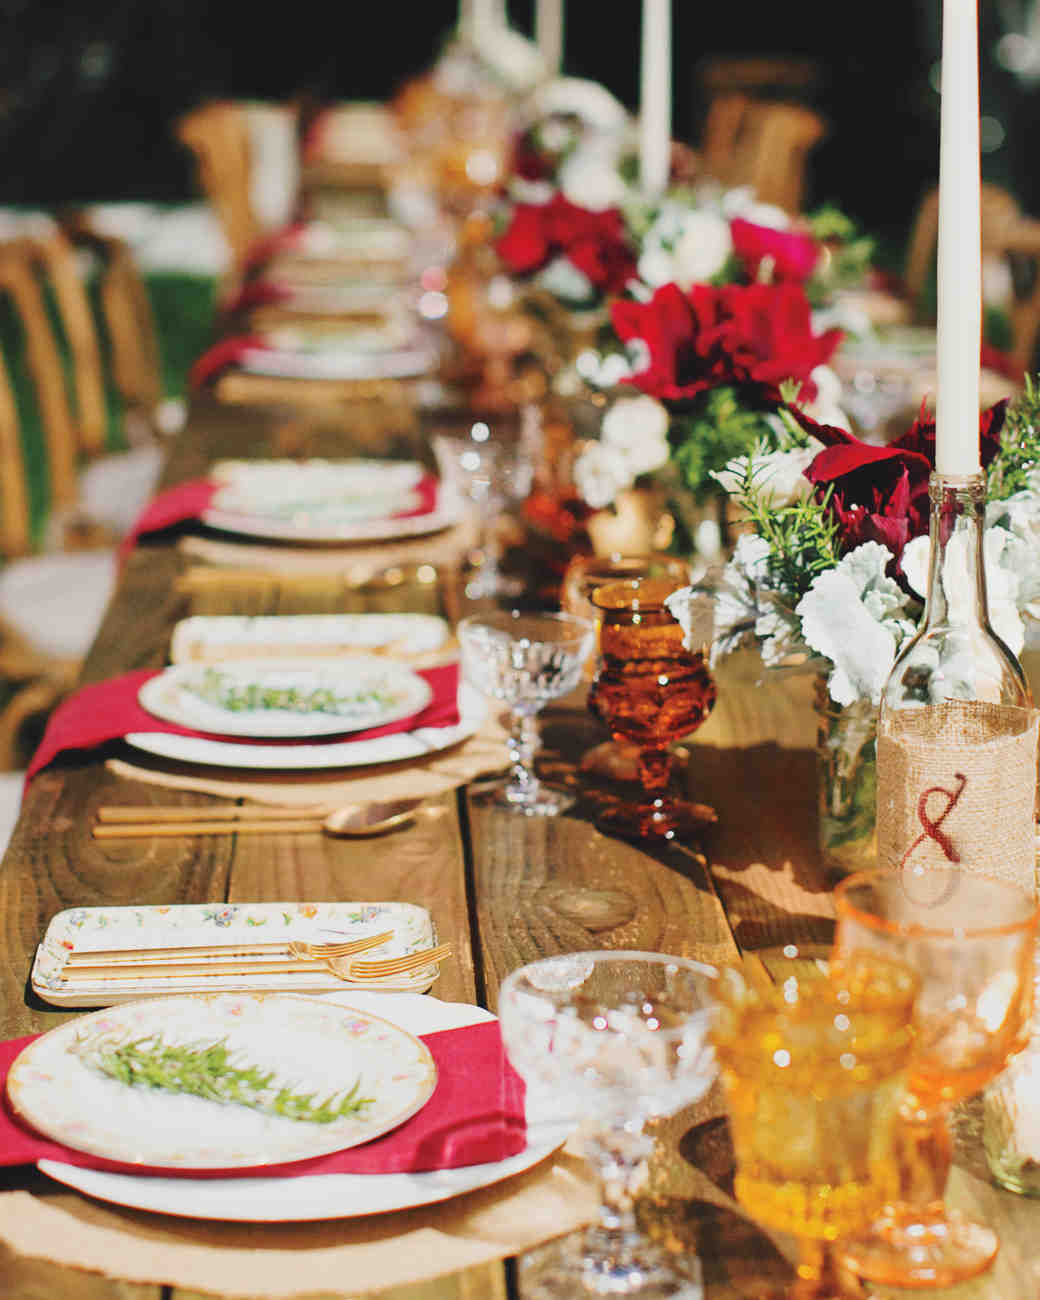 cacee-donald-tablescape-mwds110101.jpg